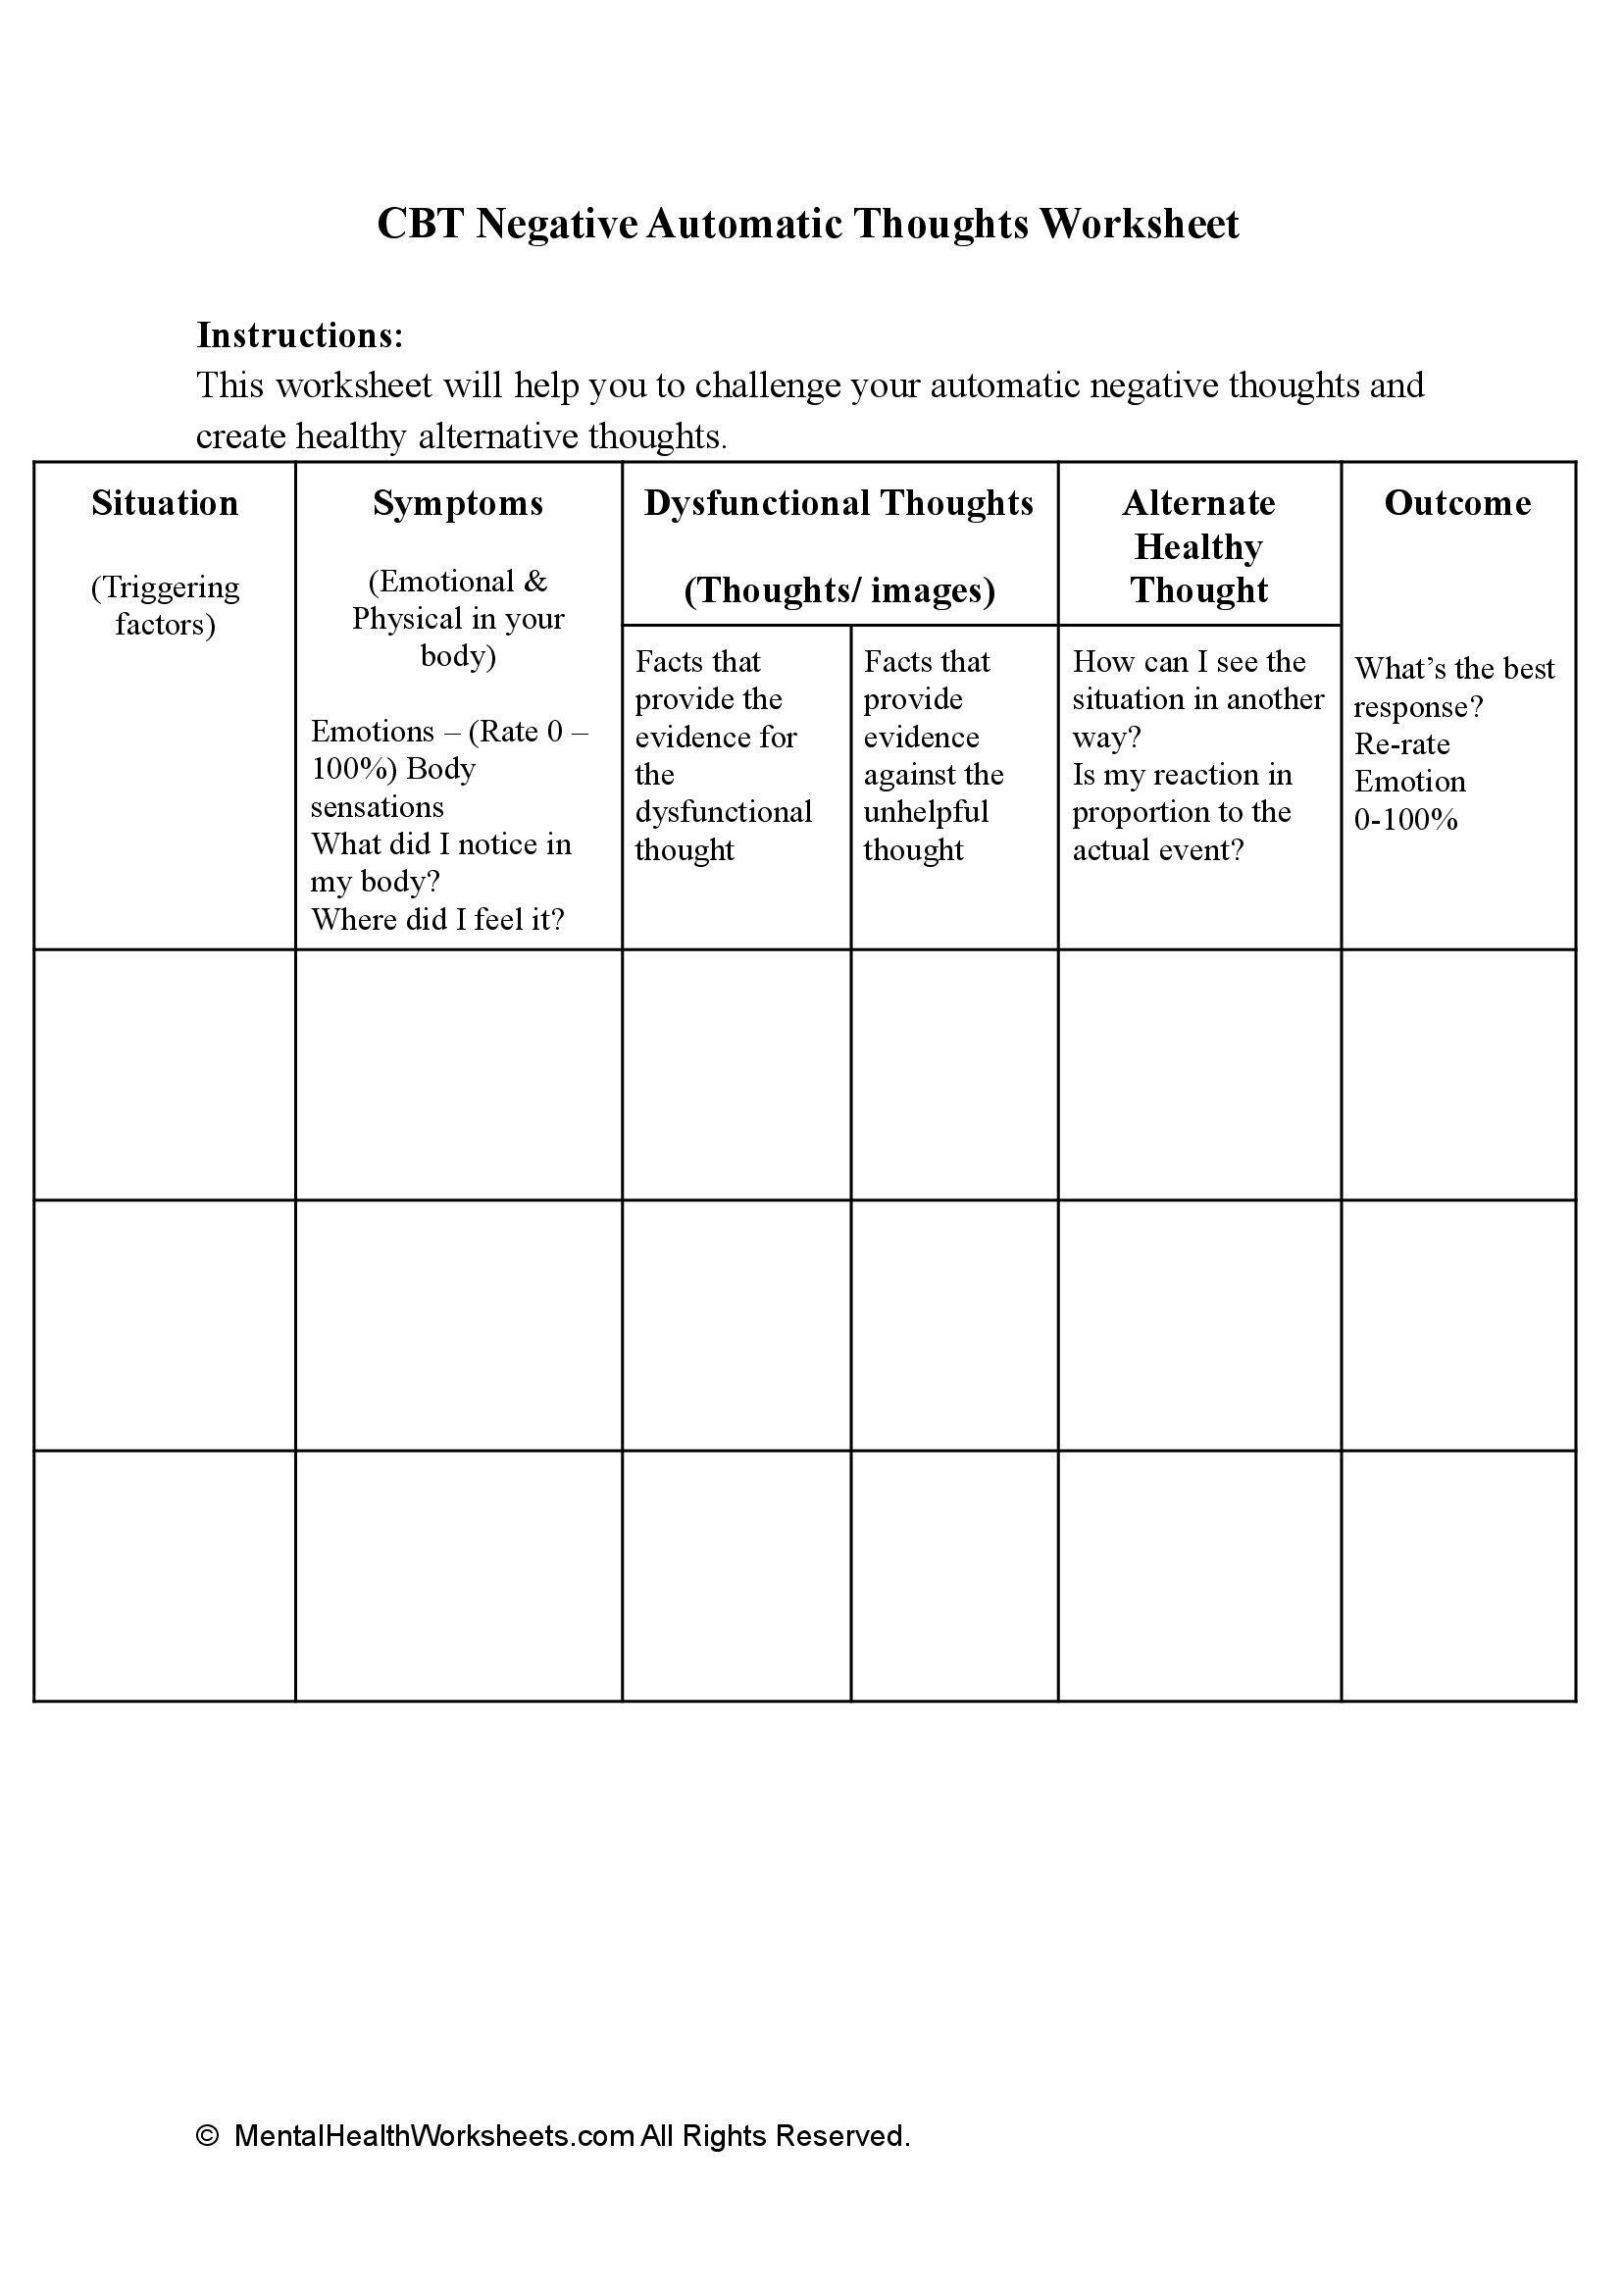 CBT Negative Automatic Thoughts Worksheet